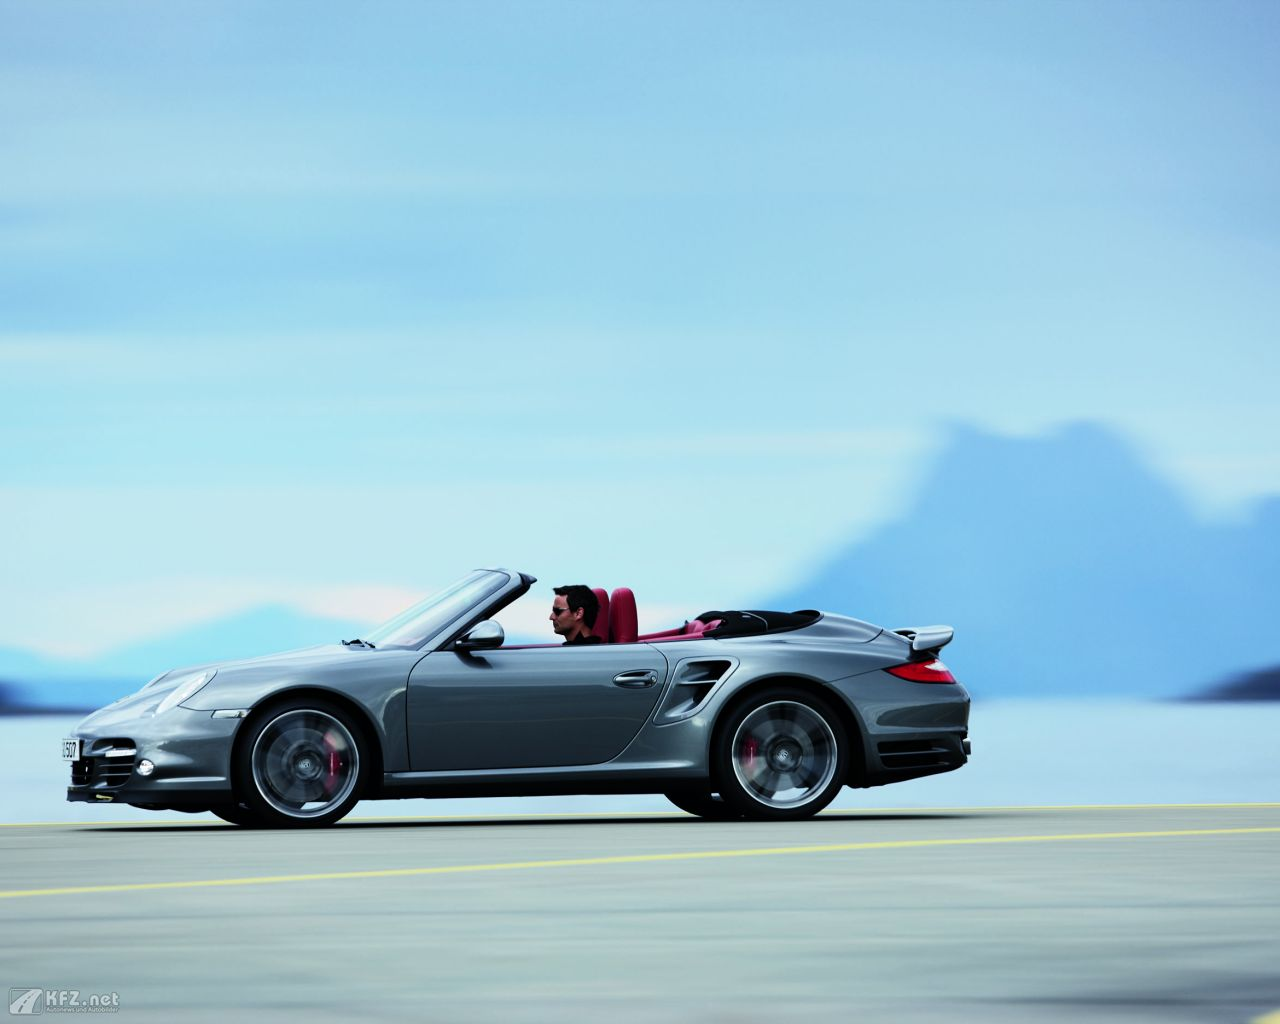 porsche-911-turbo-coupe-1280x1024-19